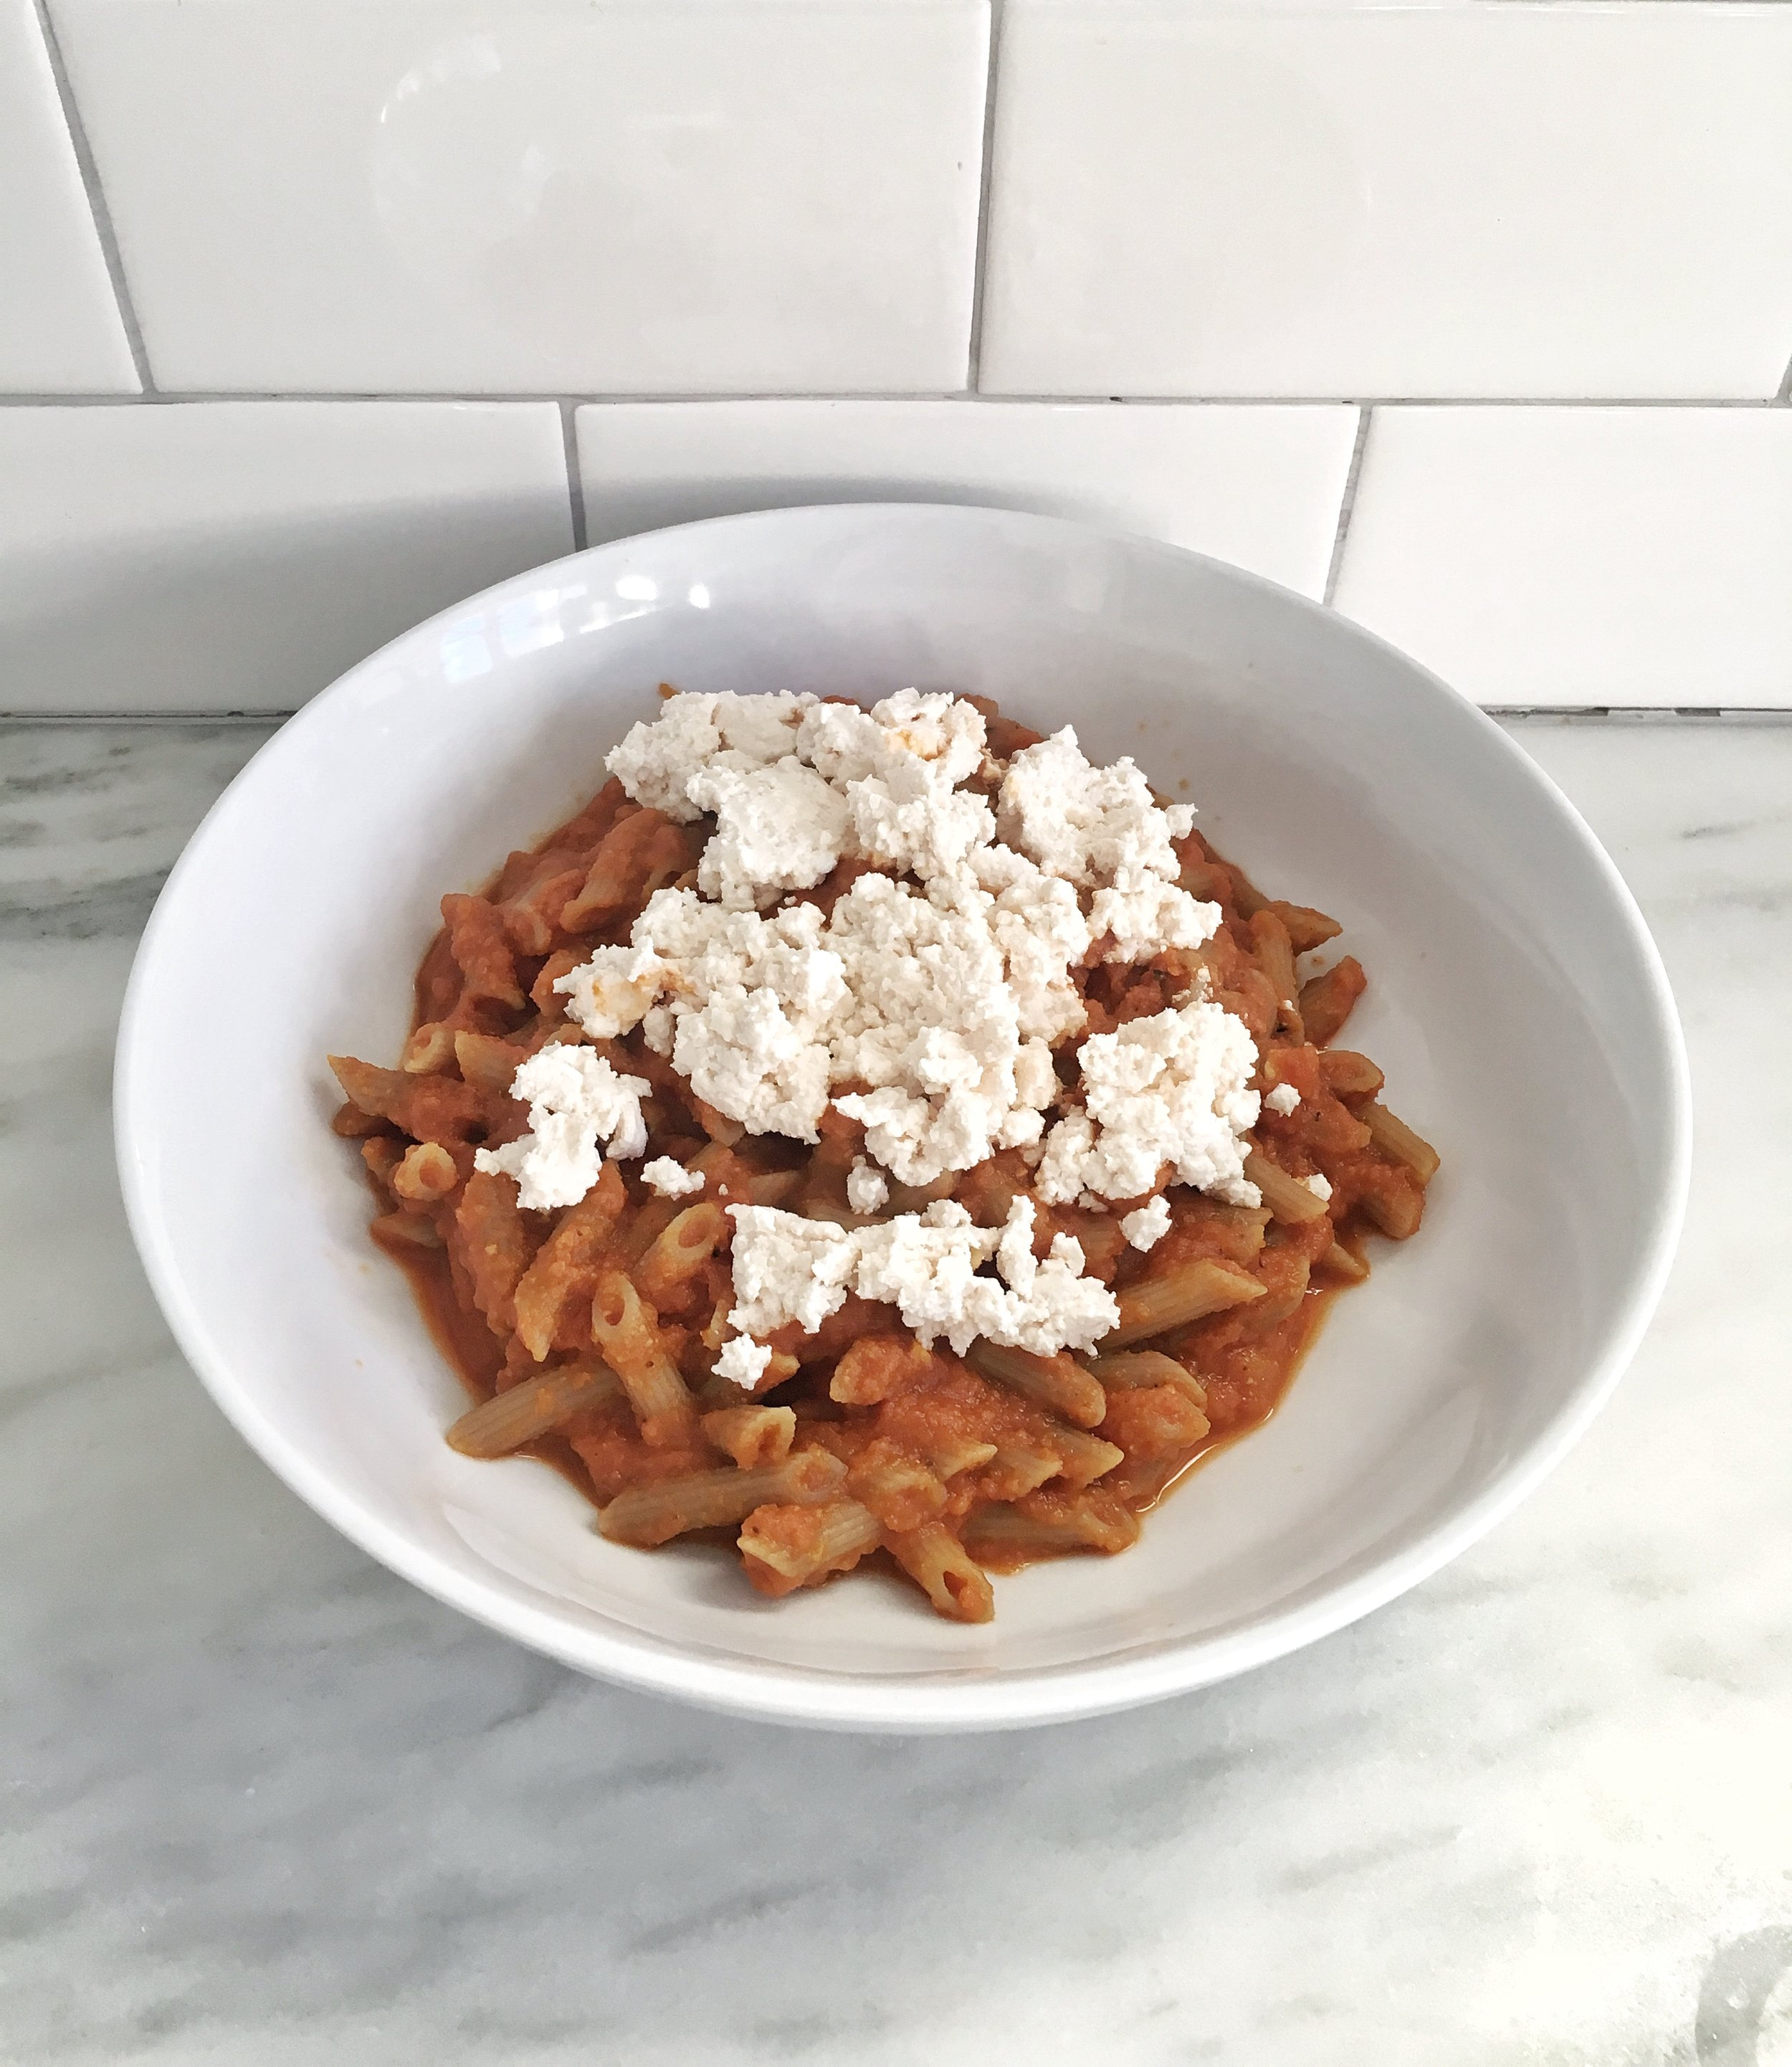 For a vegan and gluten free meal, top quinoa/brown rice pasta with sauce and Kite Hill almond milk ricotta